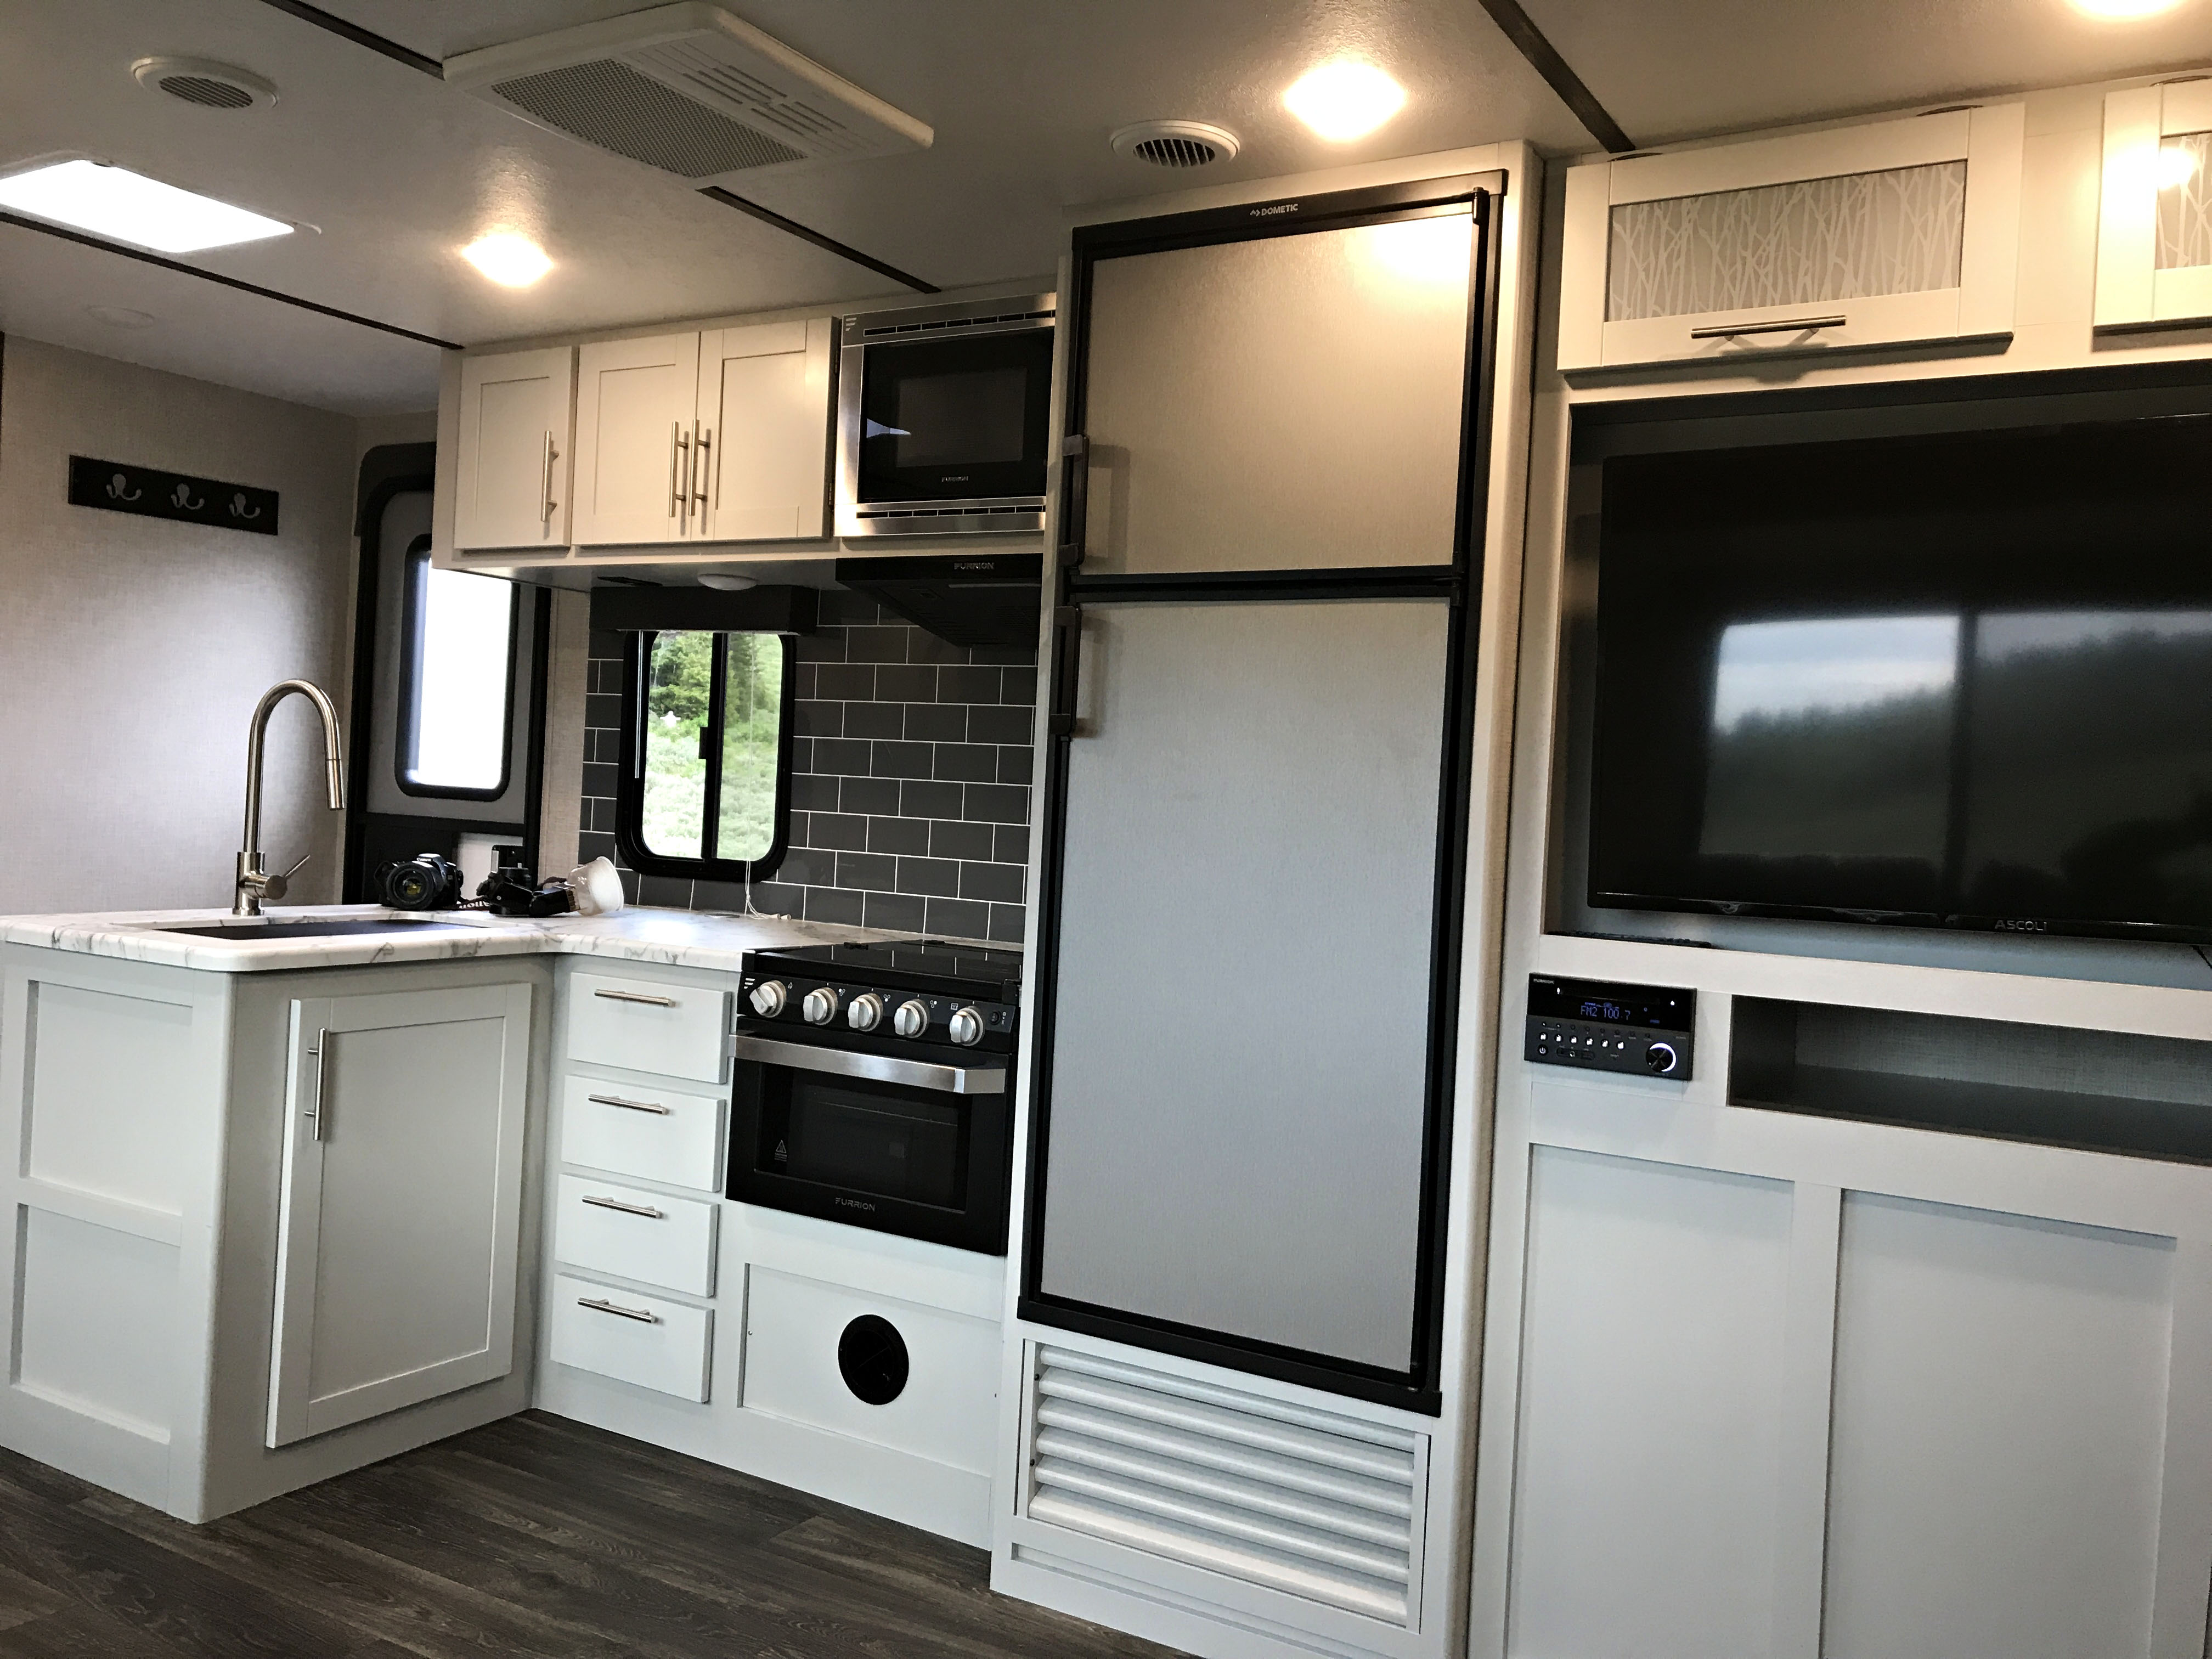 Fridge/freezer, stove/oven combo with large stainless steel sink.. Keystone Bullet Bunkhouse 2021